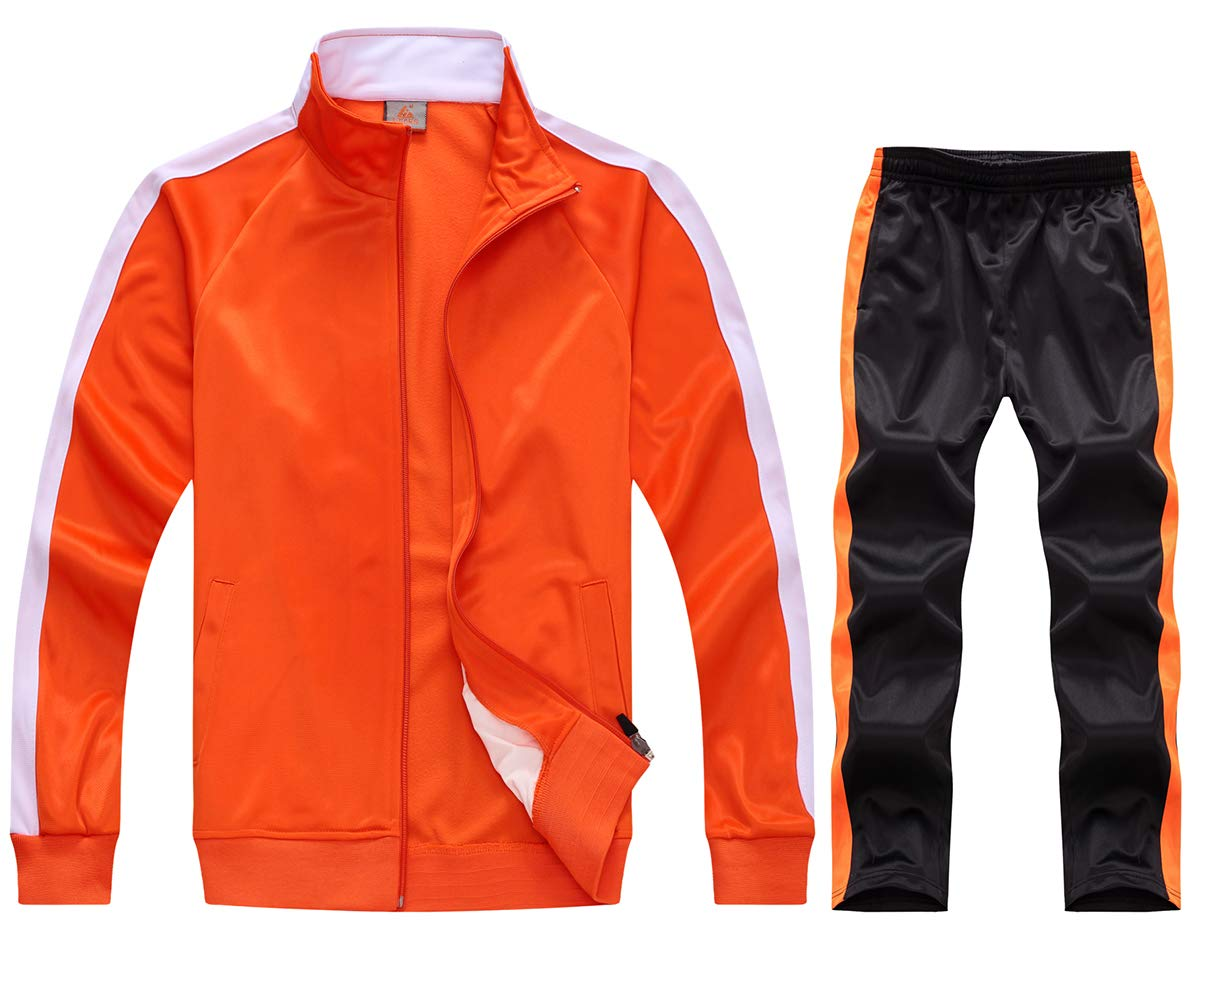 myglory77mall Running Jogging Tracksuit Jacket and Pants Warm Up Gym Wear 6801 Orange S US(L Asian) by myglory77mall